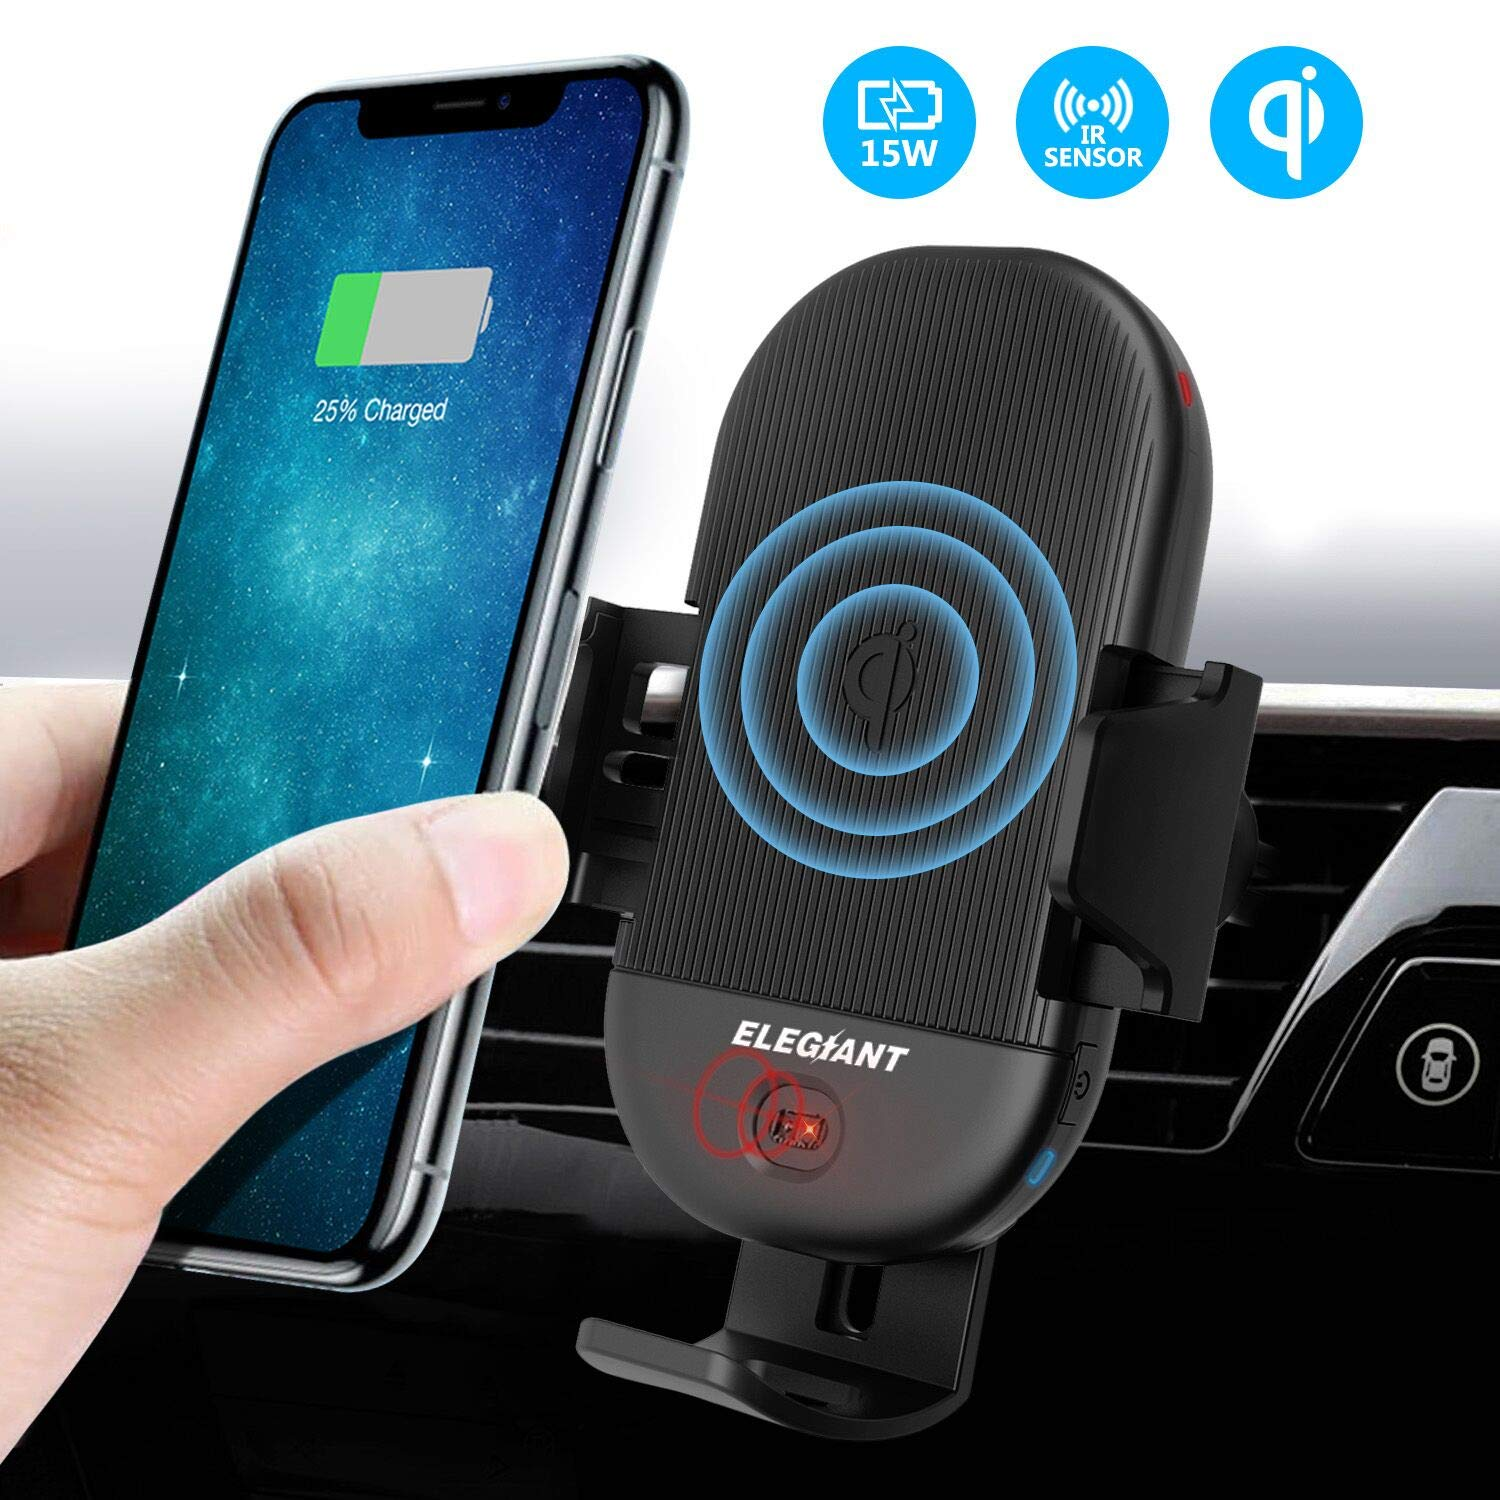 Wireless Car Charger Mount, ELEGIANT 15W 10W 7.5W Infrared Induction Automatic Clamping Air Vent Phone Holder Compatible with iPhone Xs/XS Max/XR/X/8/8 Plus Galaxy S7/S8/S9 and All Qi Capable Devices